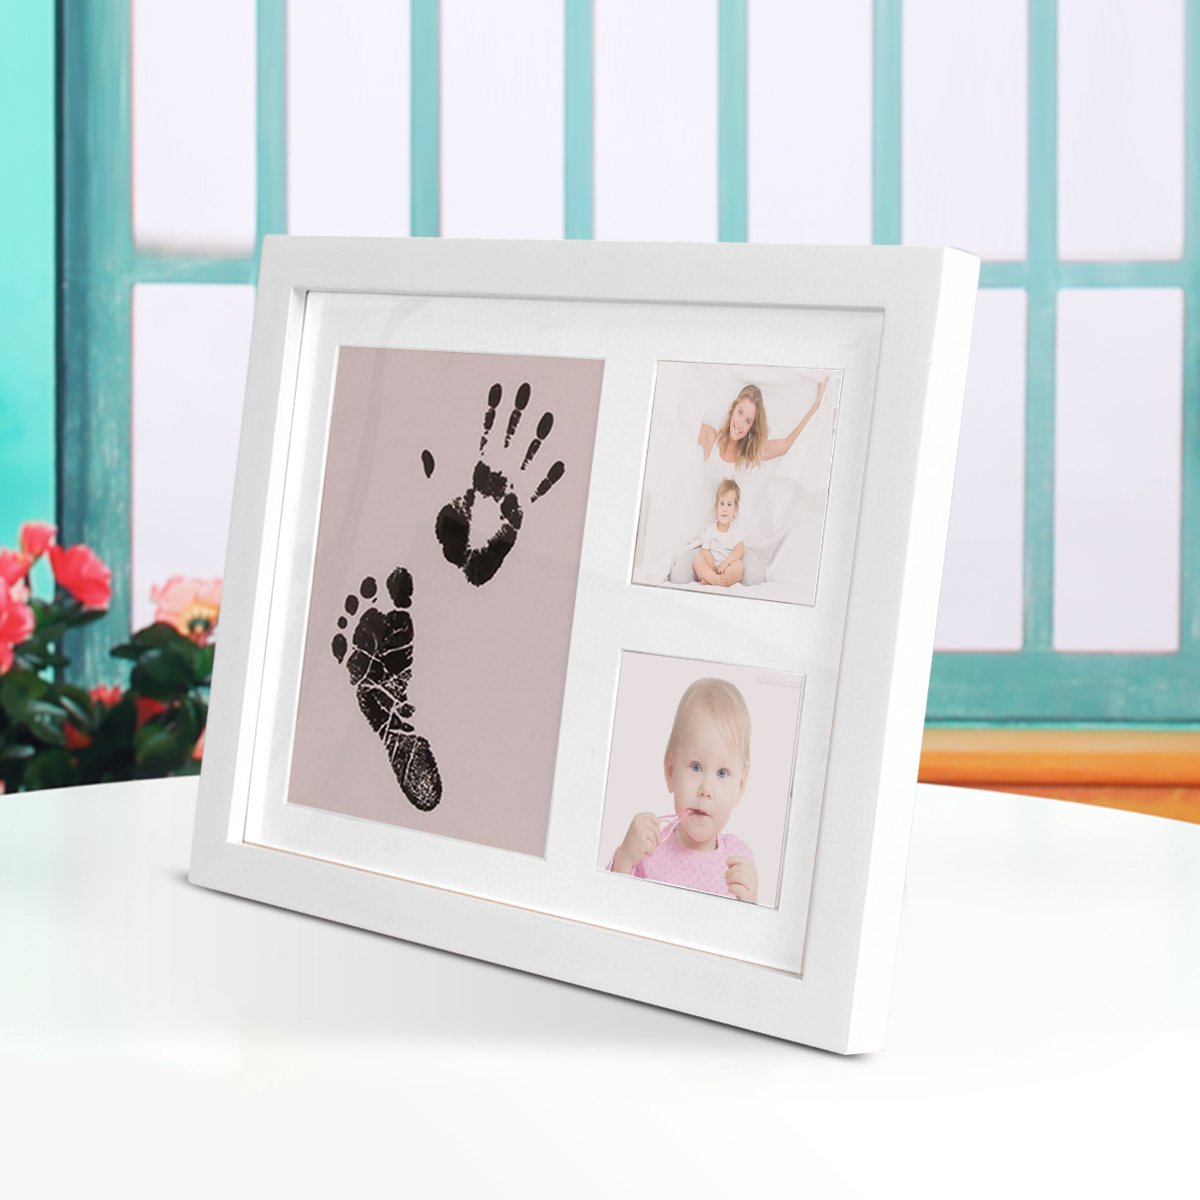 Baby Handprint and Footprint Photo Frame Kit by TopSuccess Without Ink-Touch,Safe and Non-Toxic Ink Print Kit for Baby Babyprints Inkpad Best for Newborn Baby Gifts GM10 Black inkpad Black